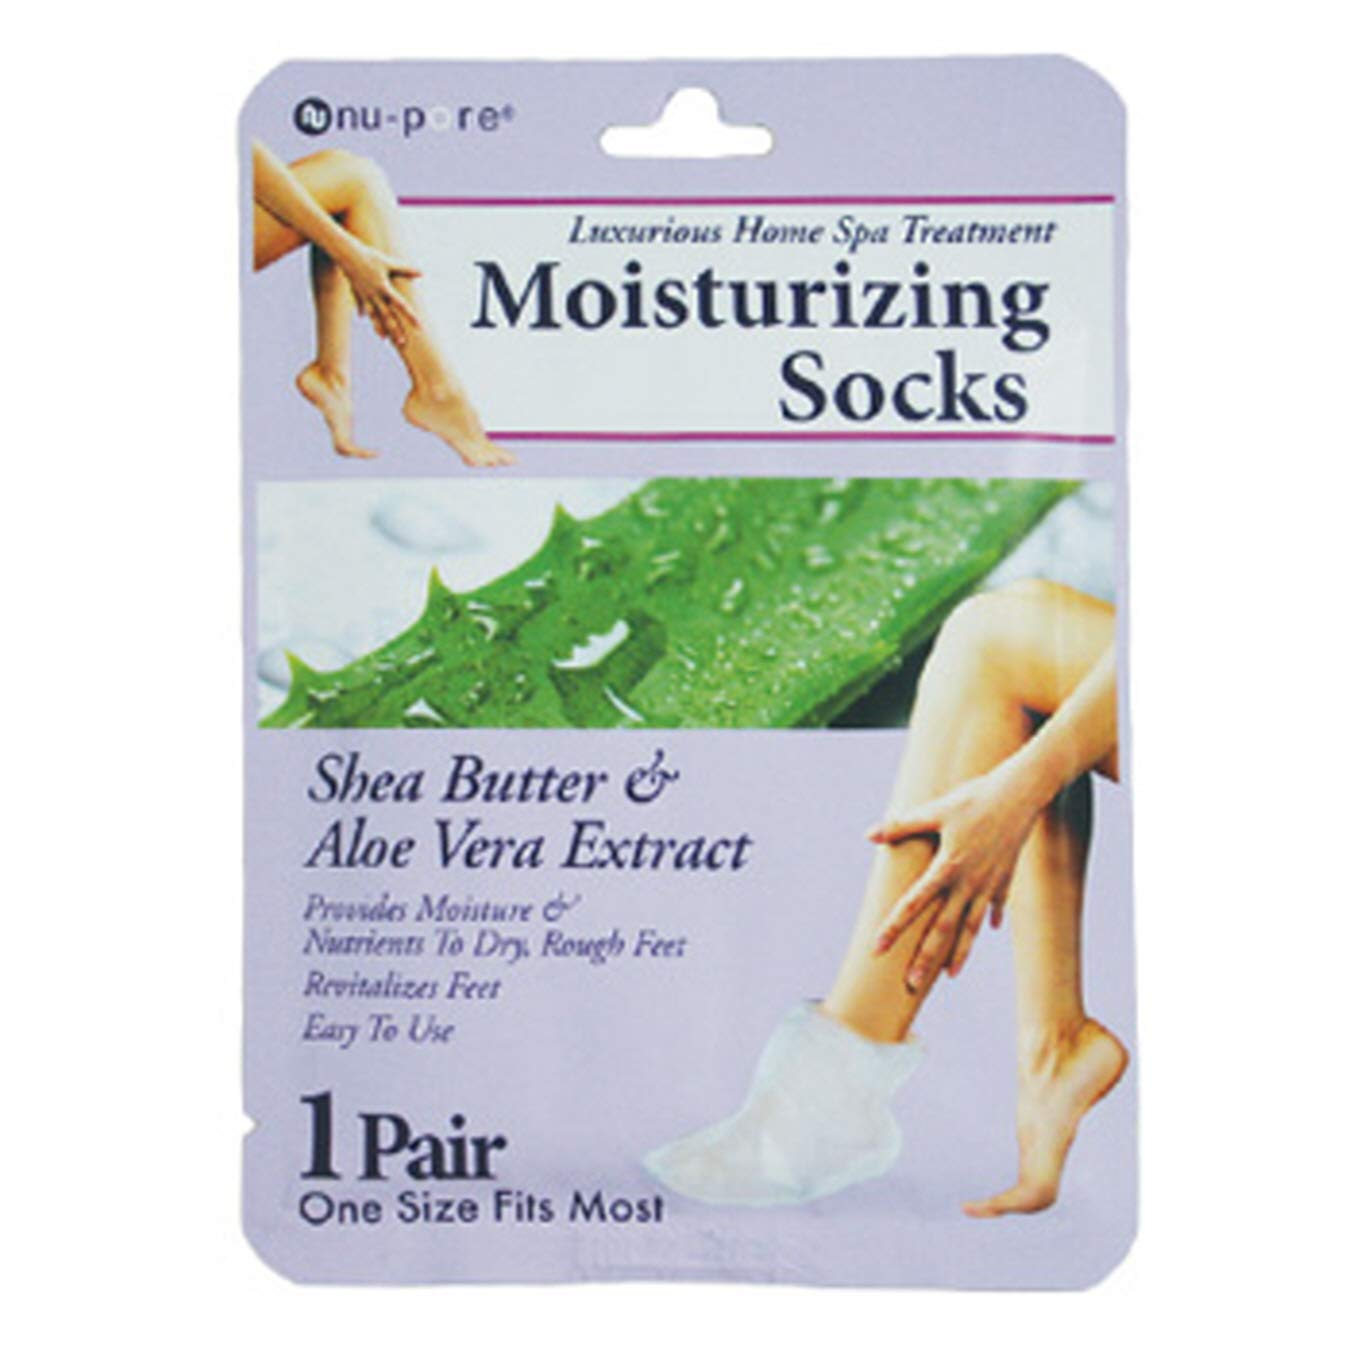 (Pack of 48) Nupore Moisturizing Socks Shea Butter & Aloe Vera Extract